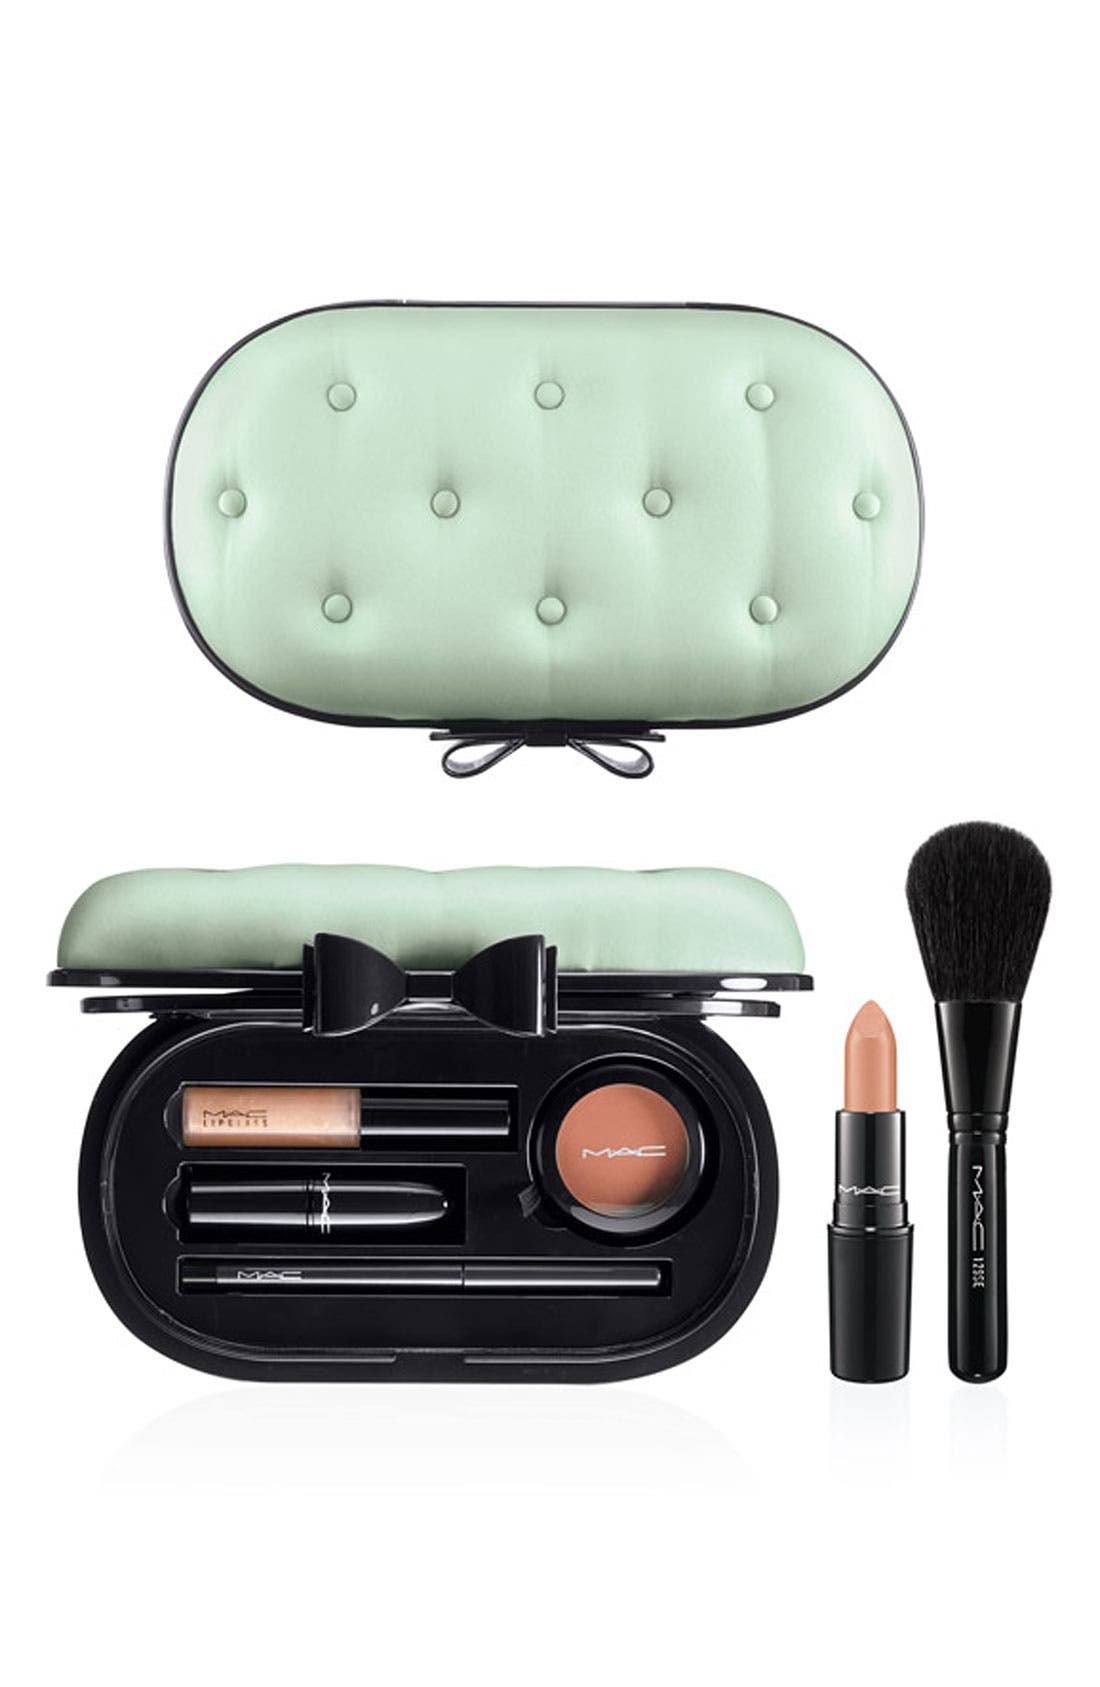 M·A·C 'Sinfully Chic' Face Kit,                         Main,                         color, 960